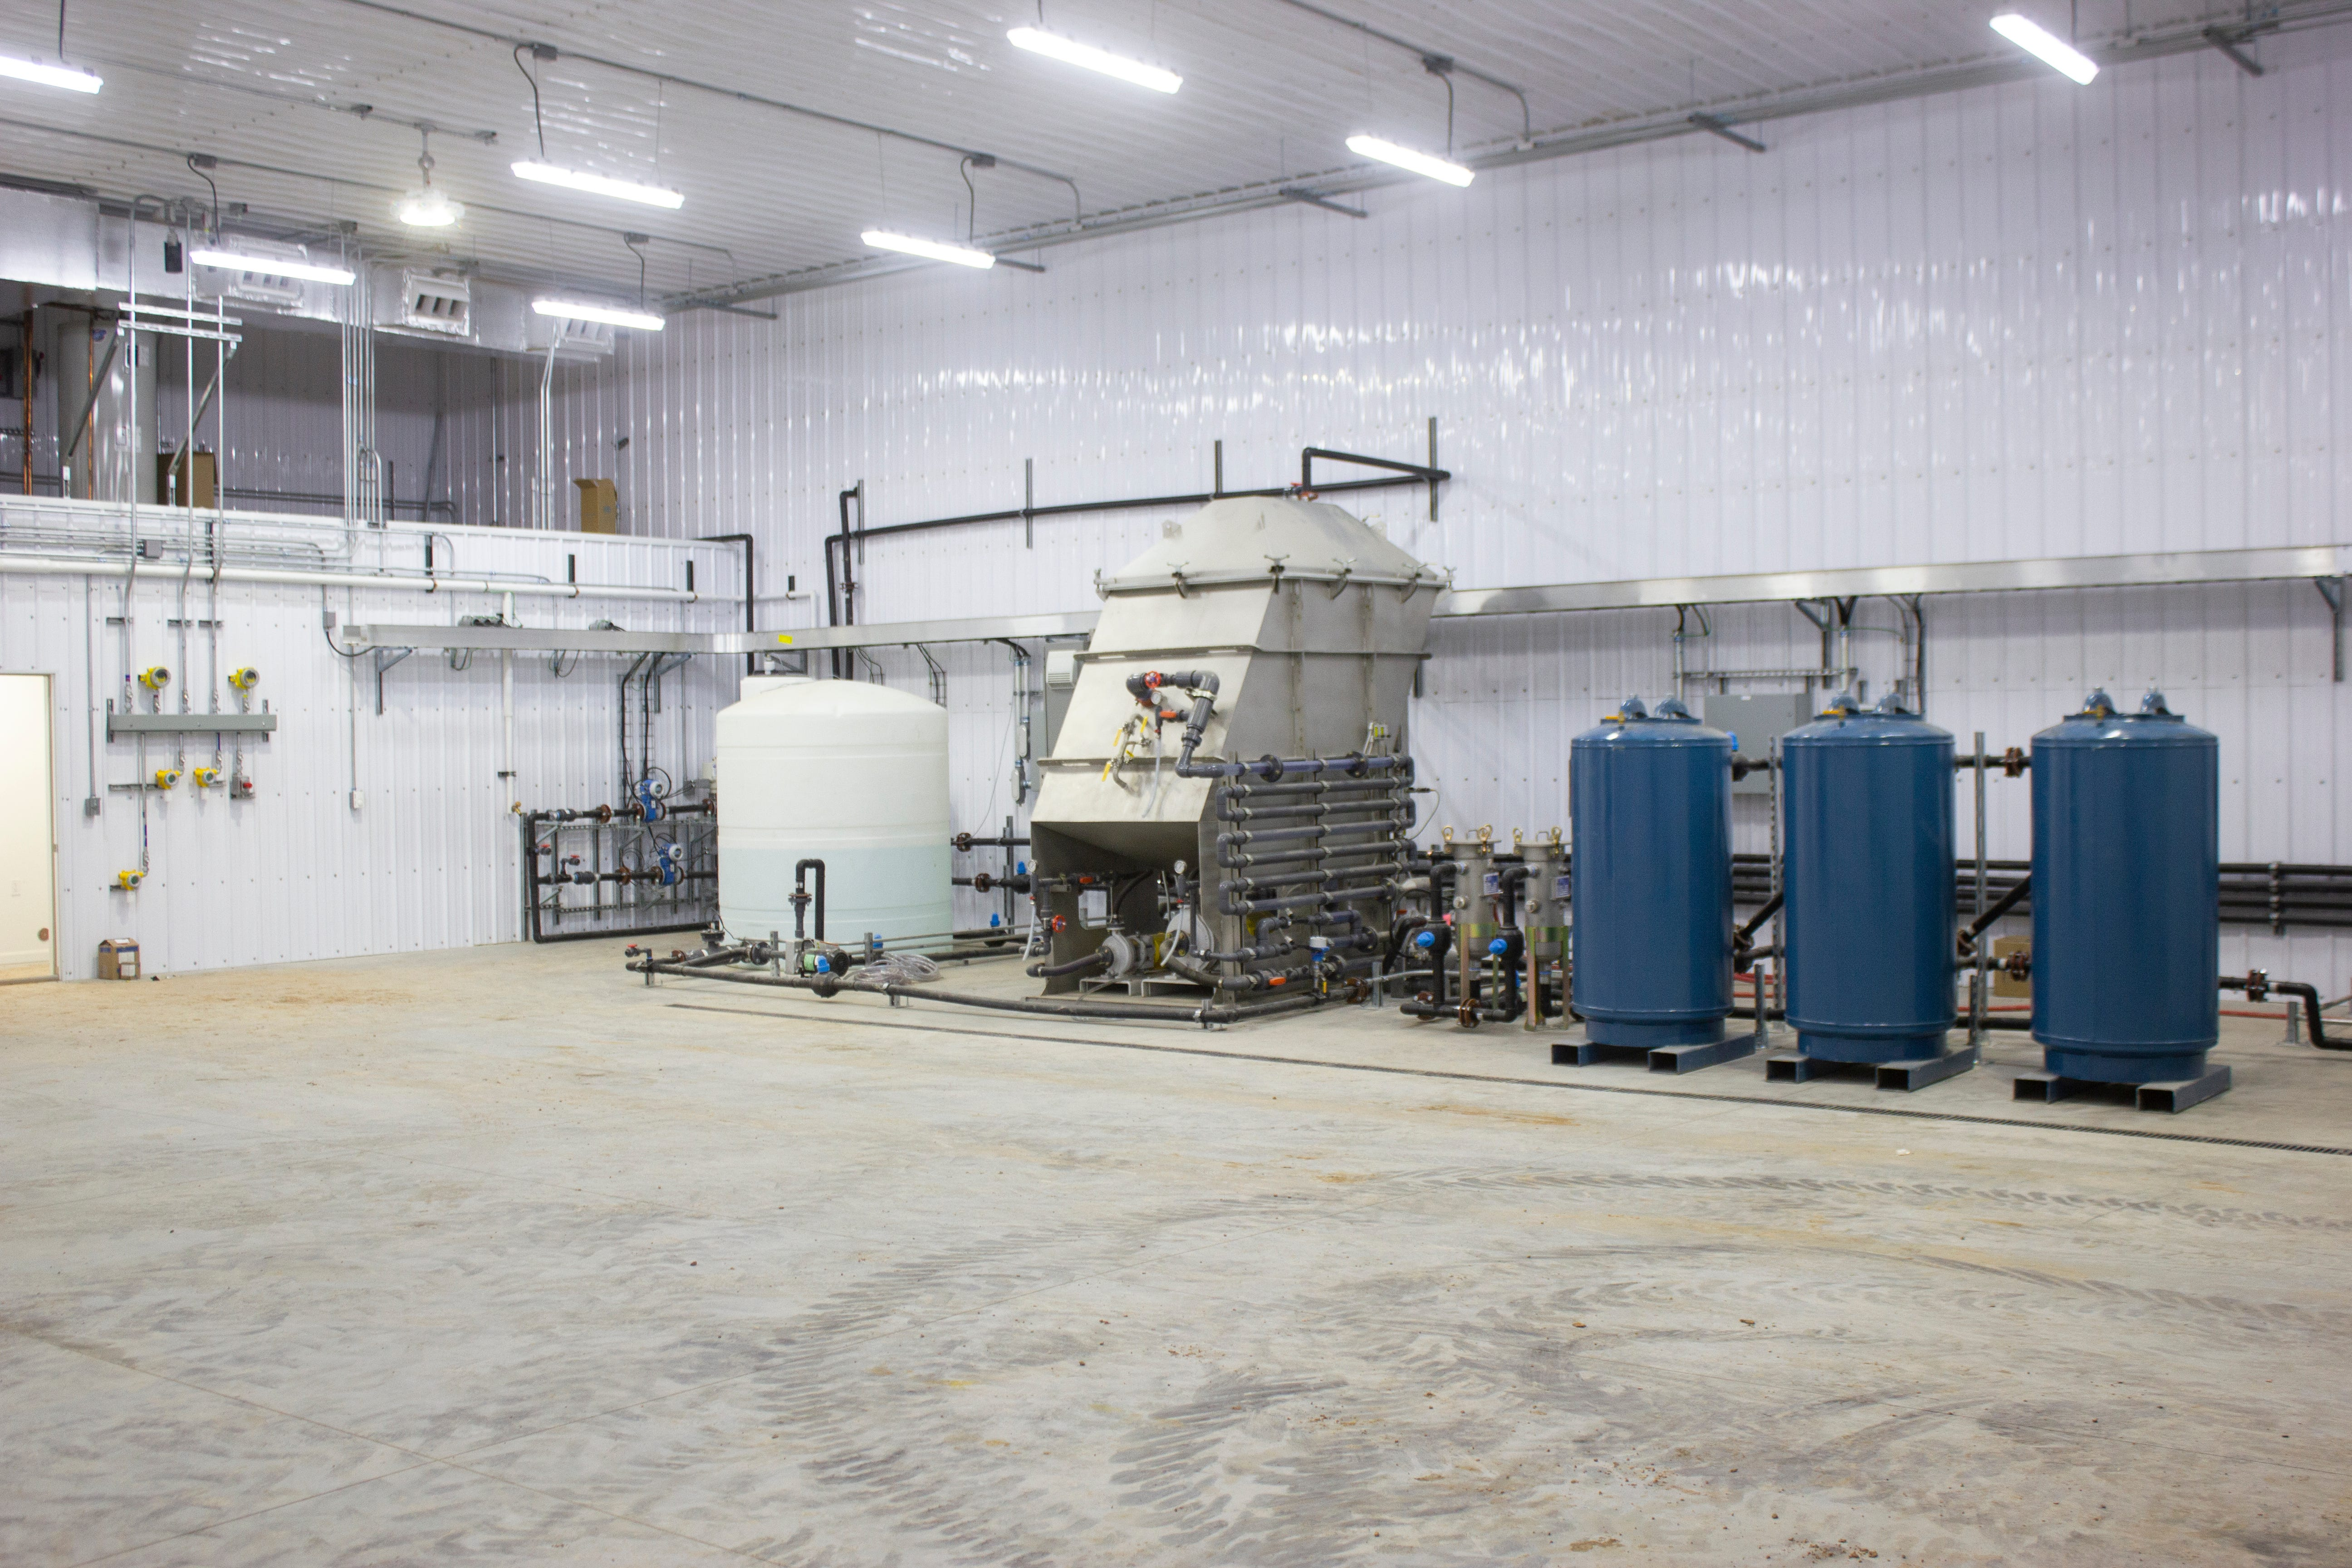 The Energy & Environmental Research Center in North Dakota constructed a first-of-its-kind brine treatment technology development and test site. The EERC is testing ways to ultimately reduce disposal volumes of waste water produced from fracking.